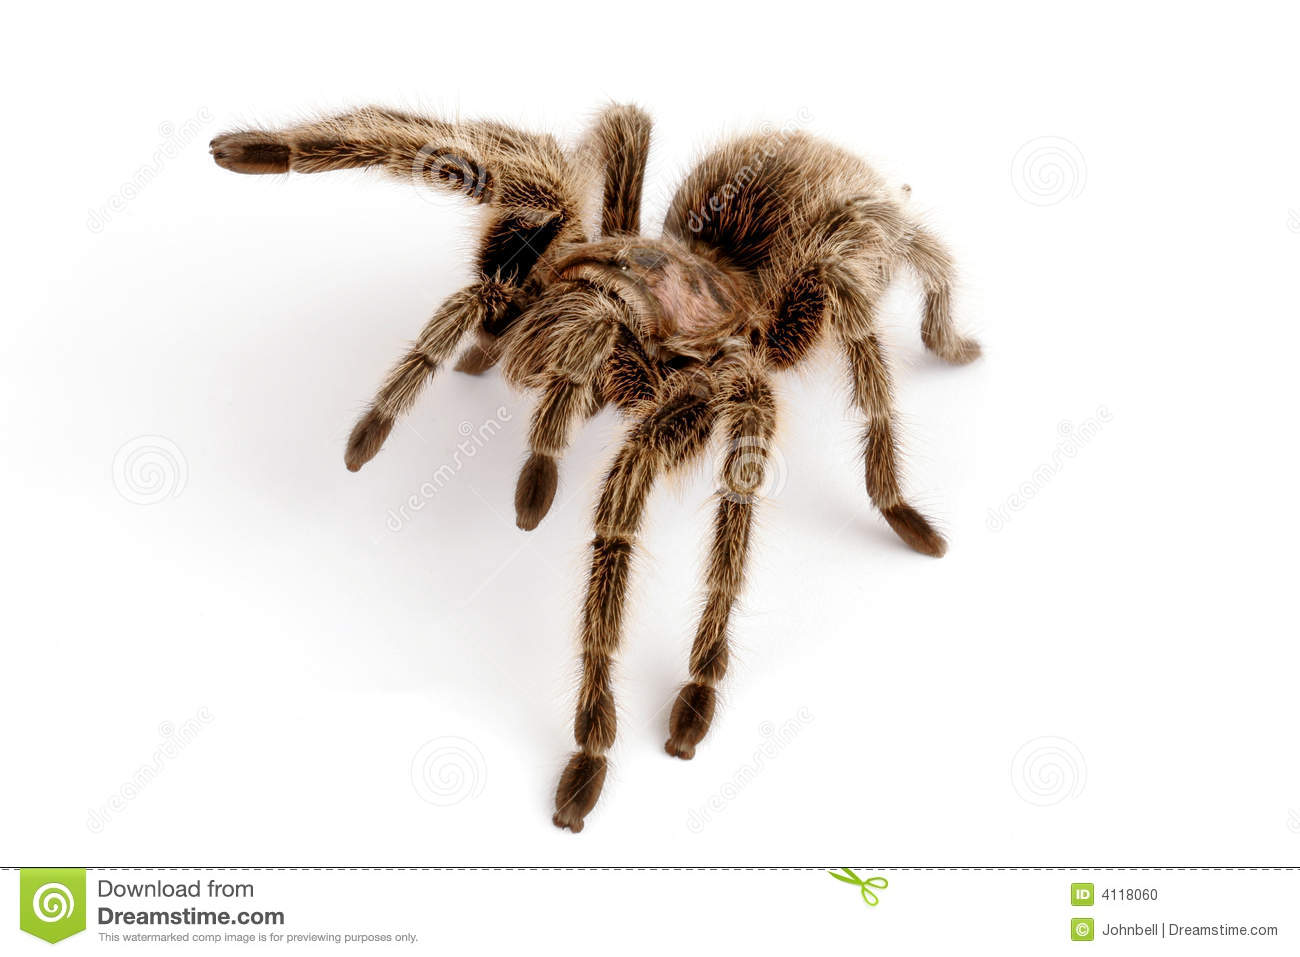 Chilean Rose Tarantula clipart #14, Download drawings